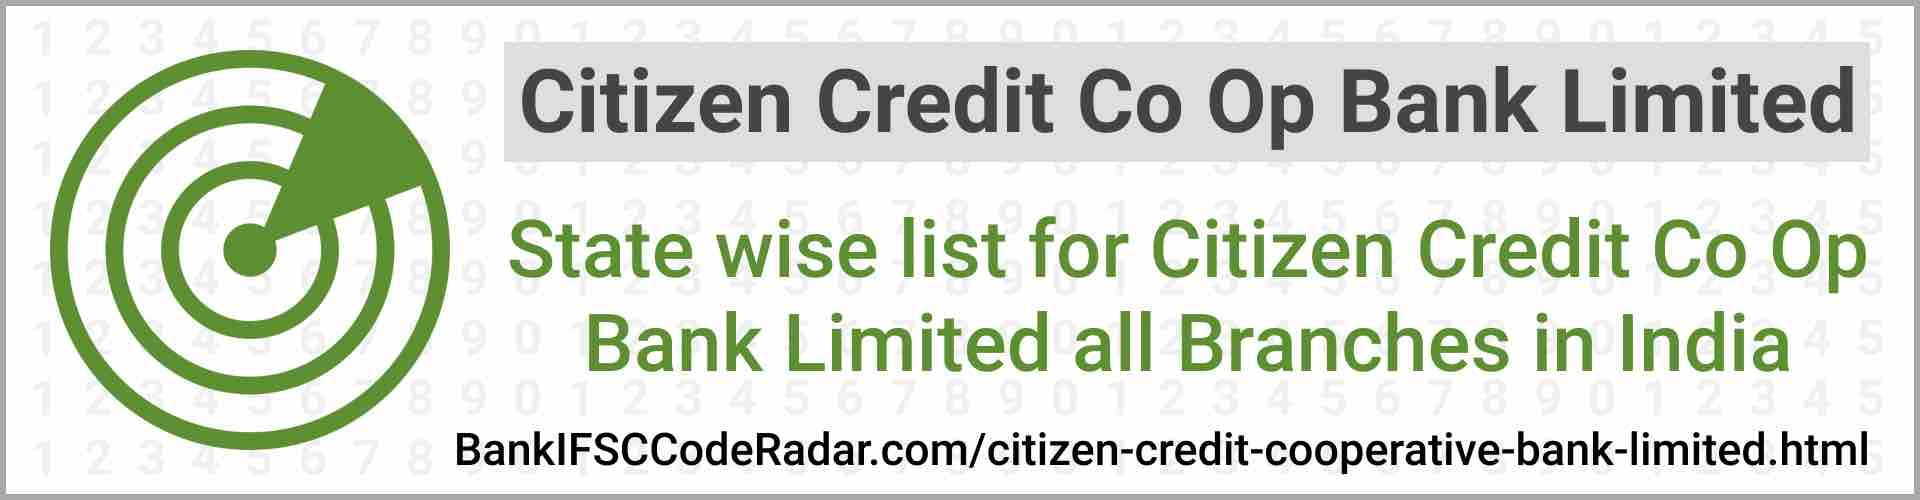 Citizen Credit Cooperative Bank Limited All Branches India